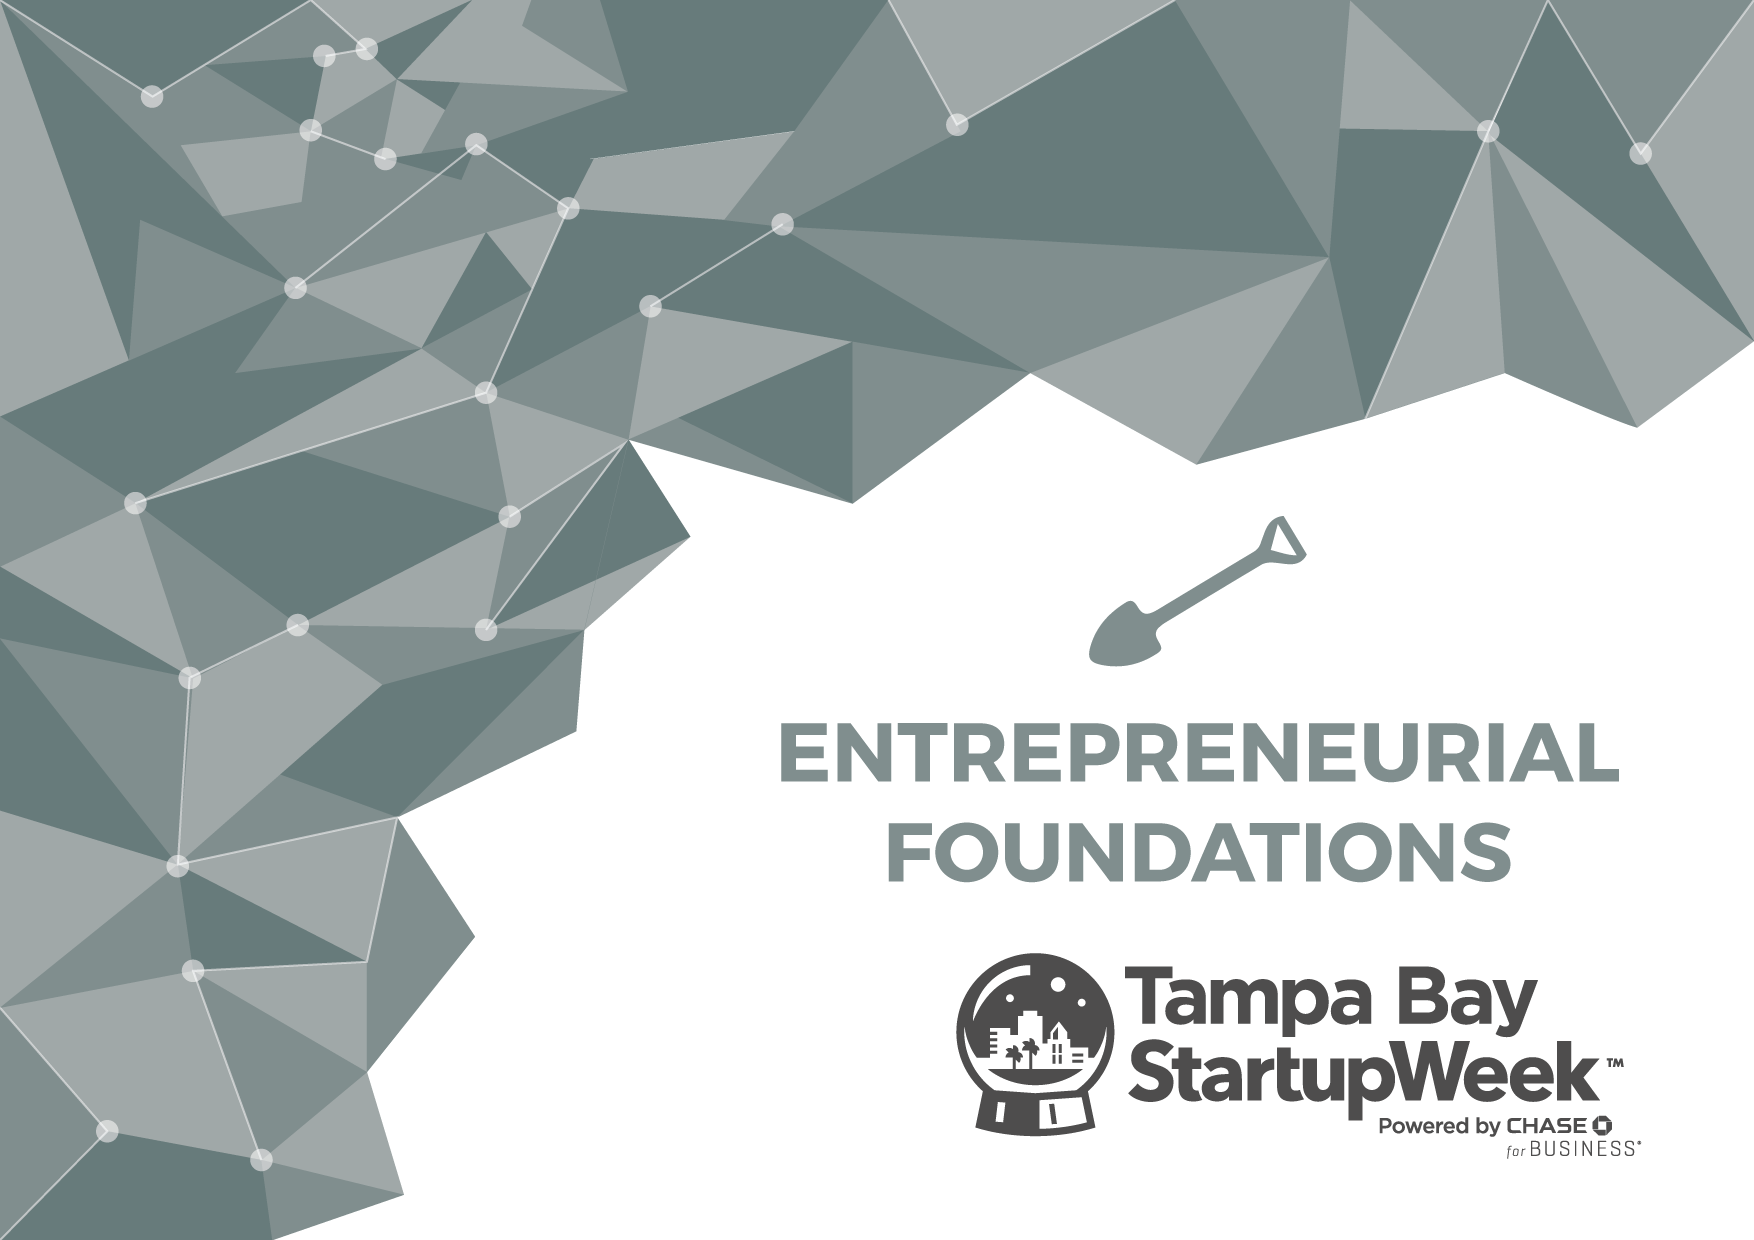 TRACK HIGHLIGHT: Entrepreneurial Foundations powered by Staffometry